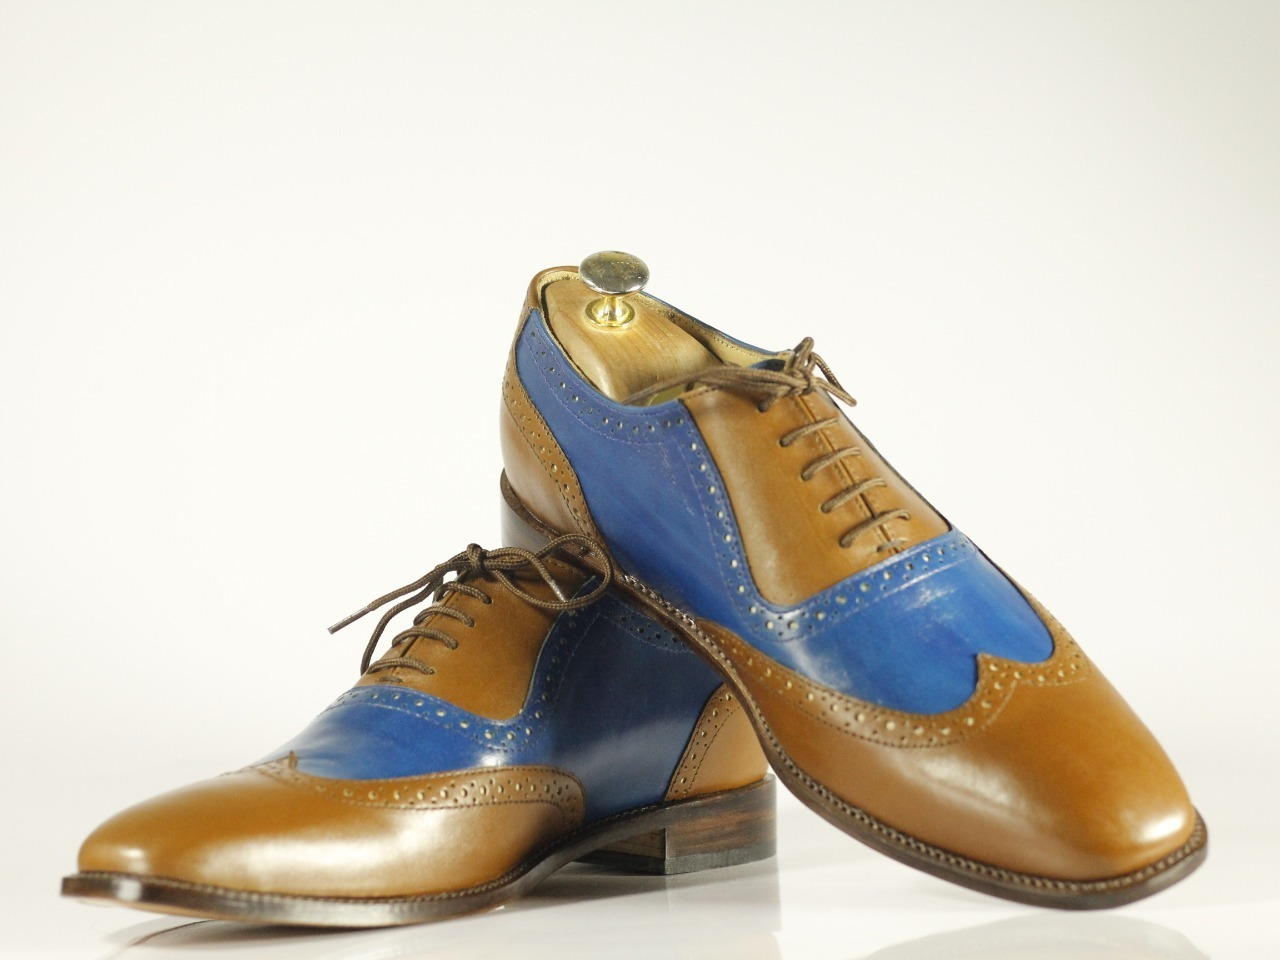 Handmade Brown & Blue Leather Wing Tip Dress/Formal Oxford Shoes